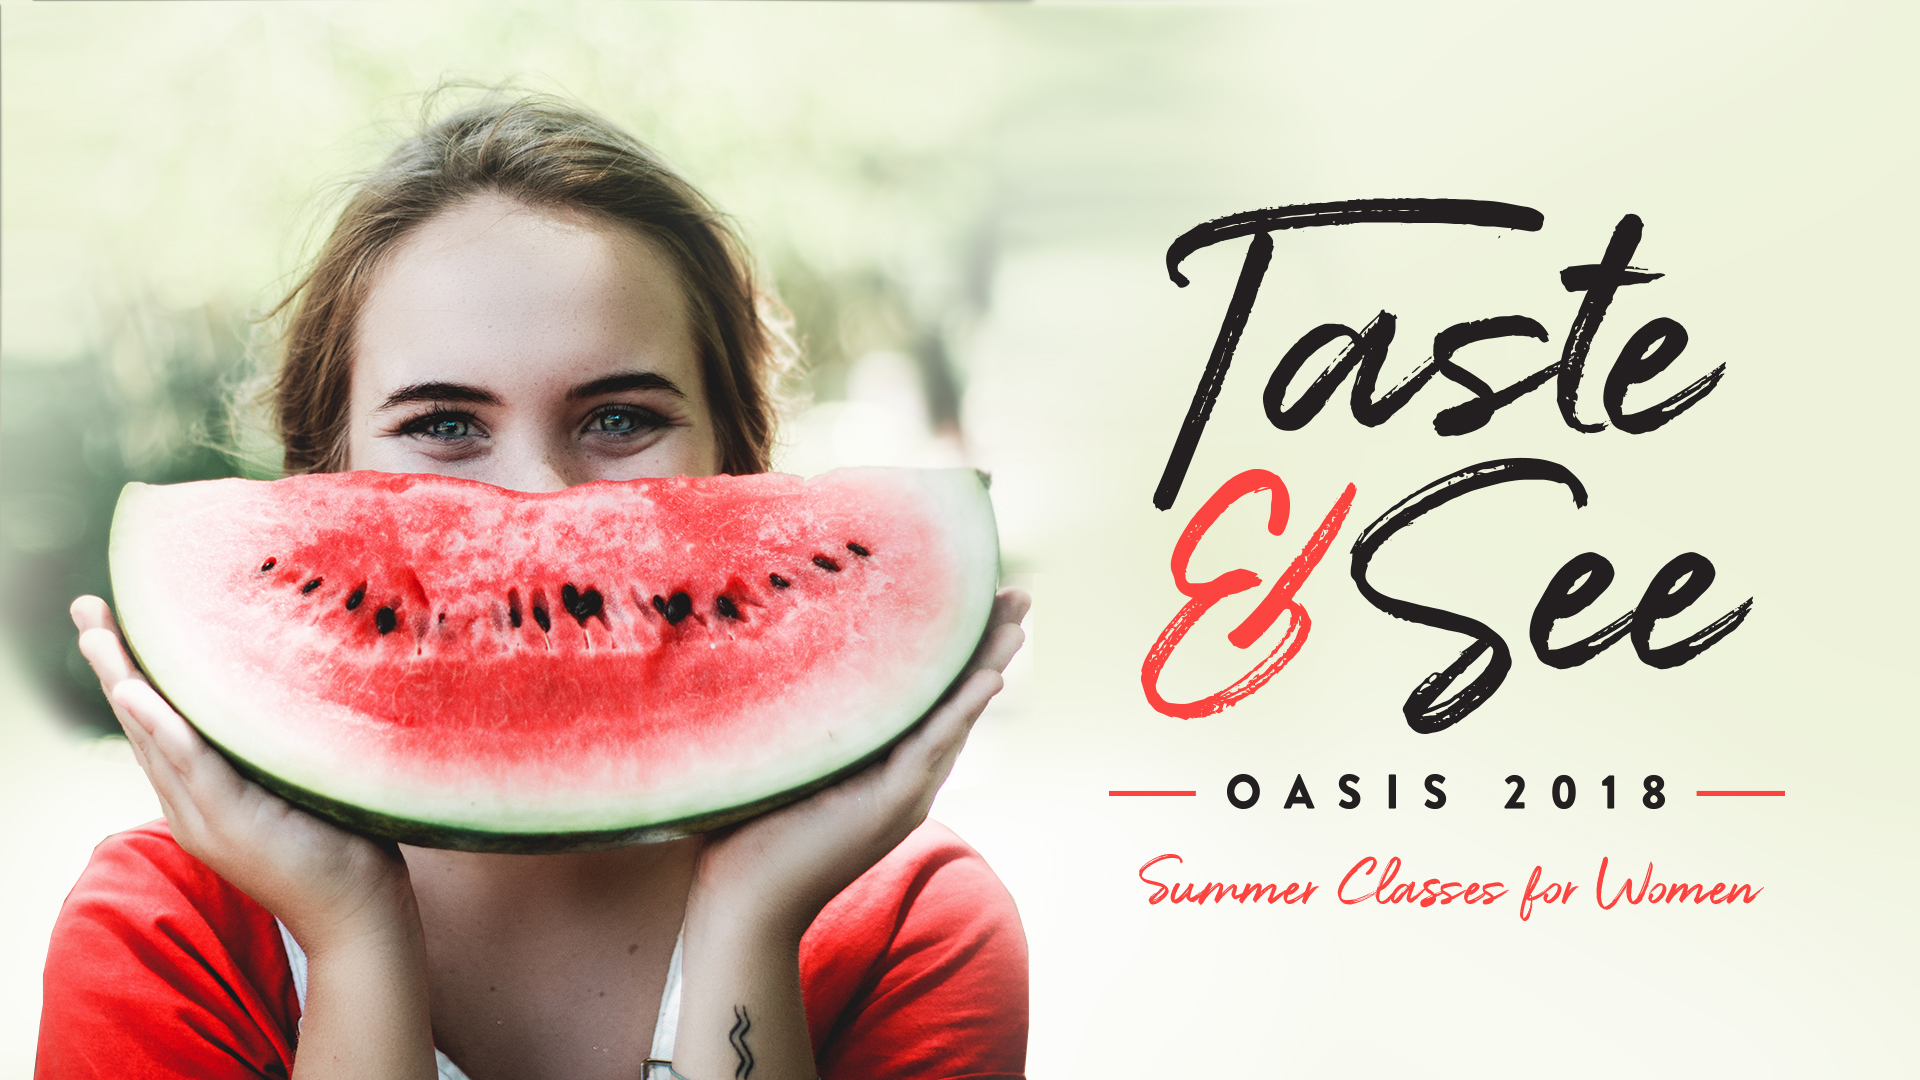 Oasis 2018 title